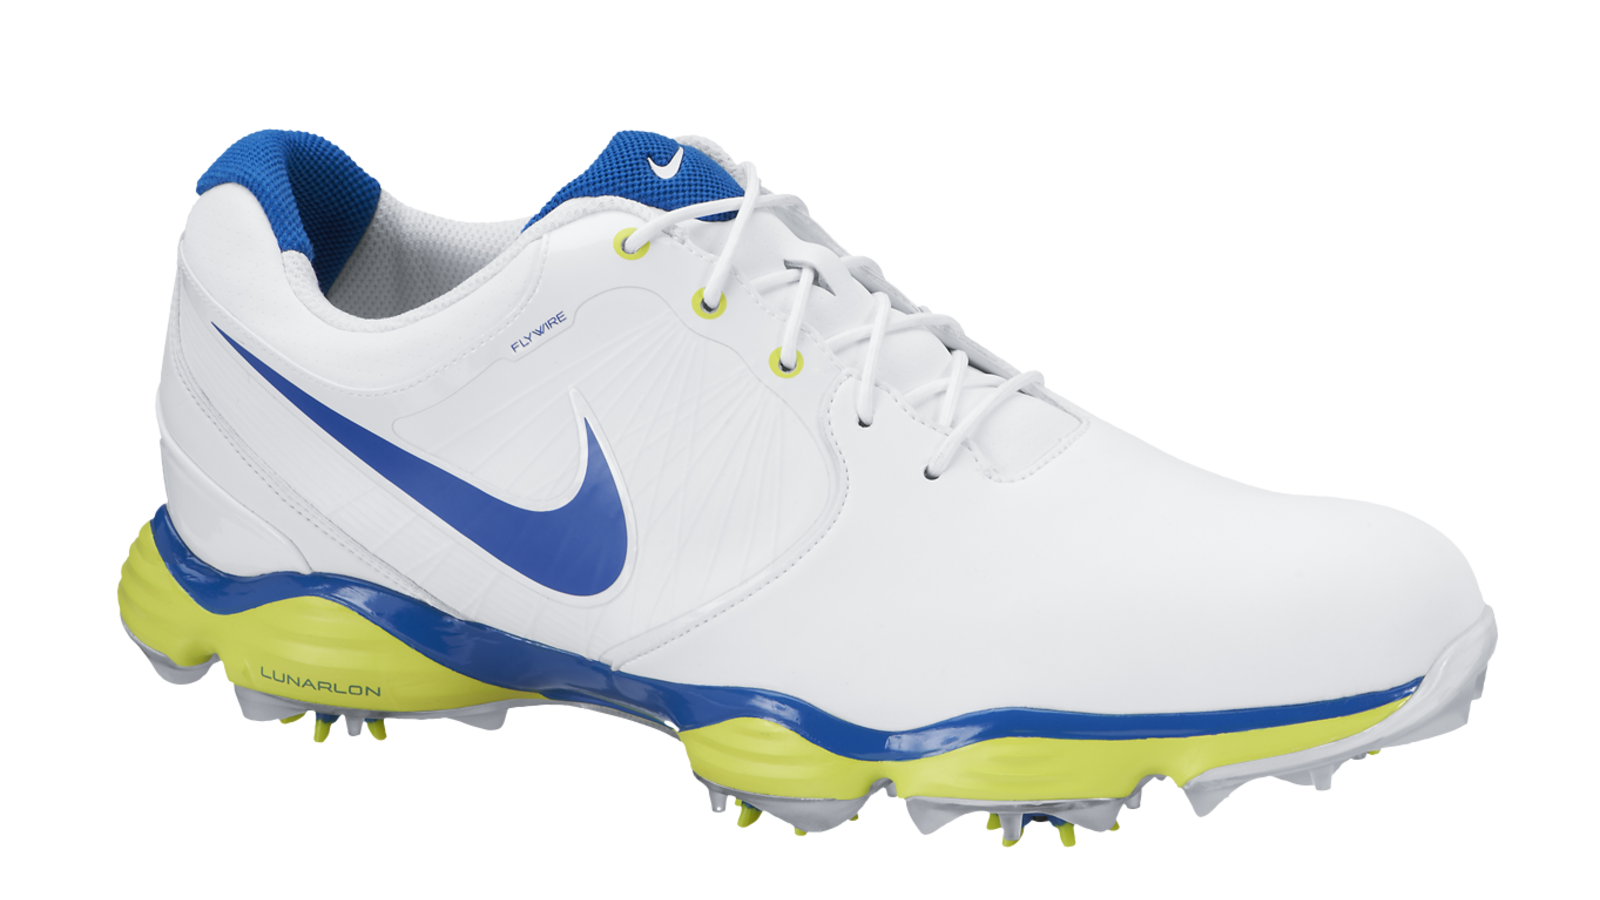 size 40 8c23a ab65d Nike Lunar Control 11 Vibrant Colors, Lightweight Cushioning Combine in the Nike  Lunar ... Nike Lunar Control II Shoes ...